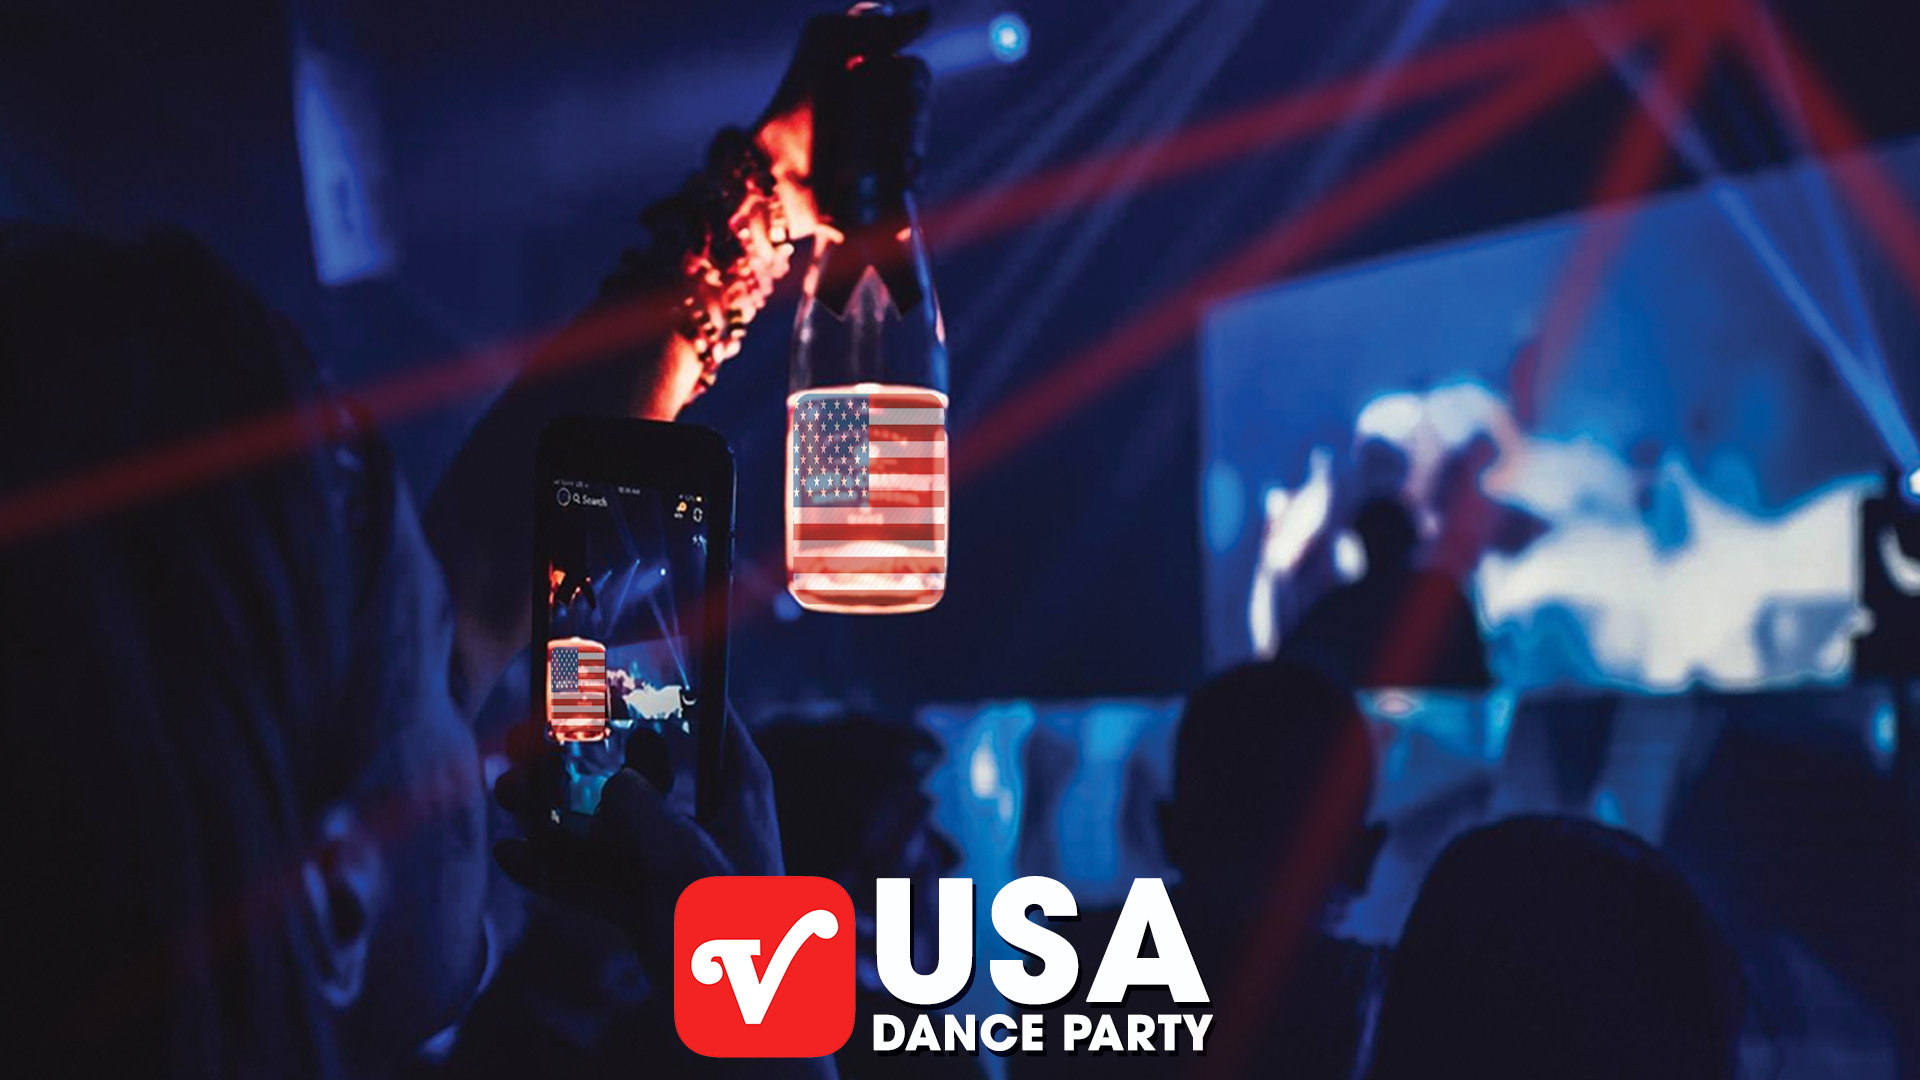 USA Dance Party